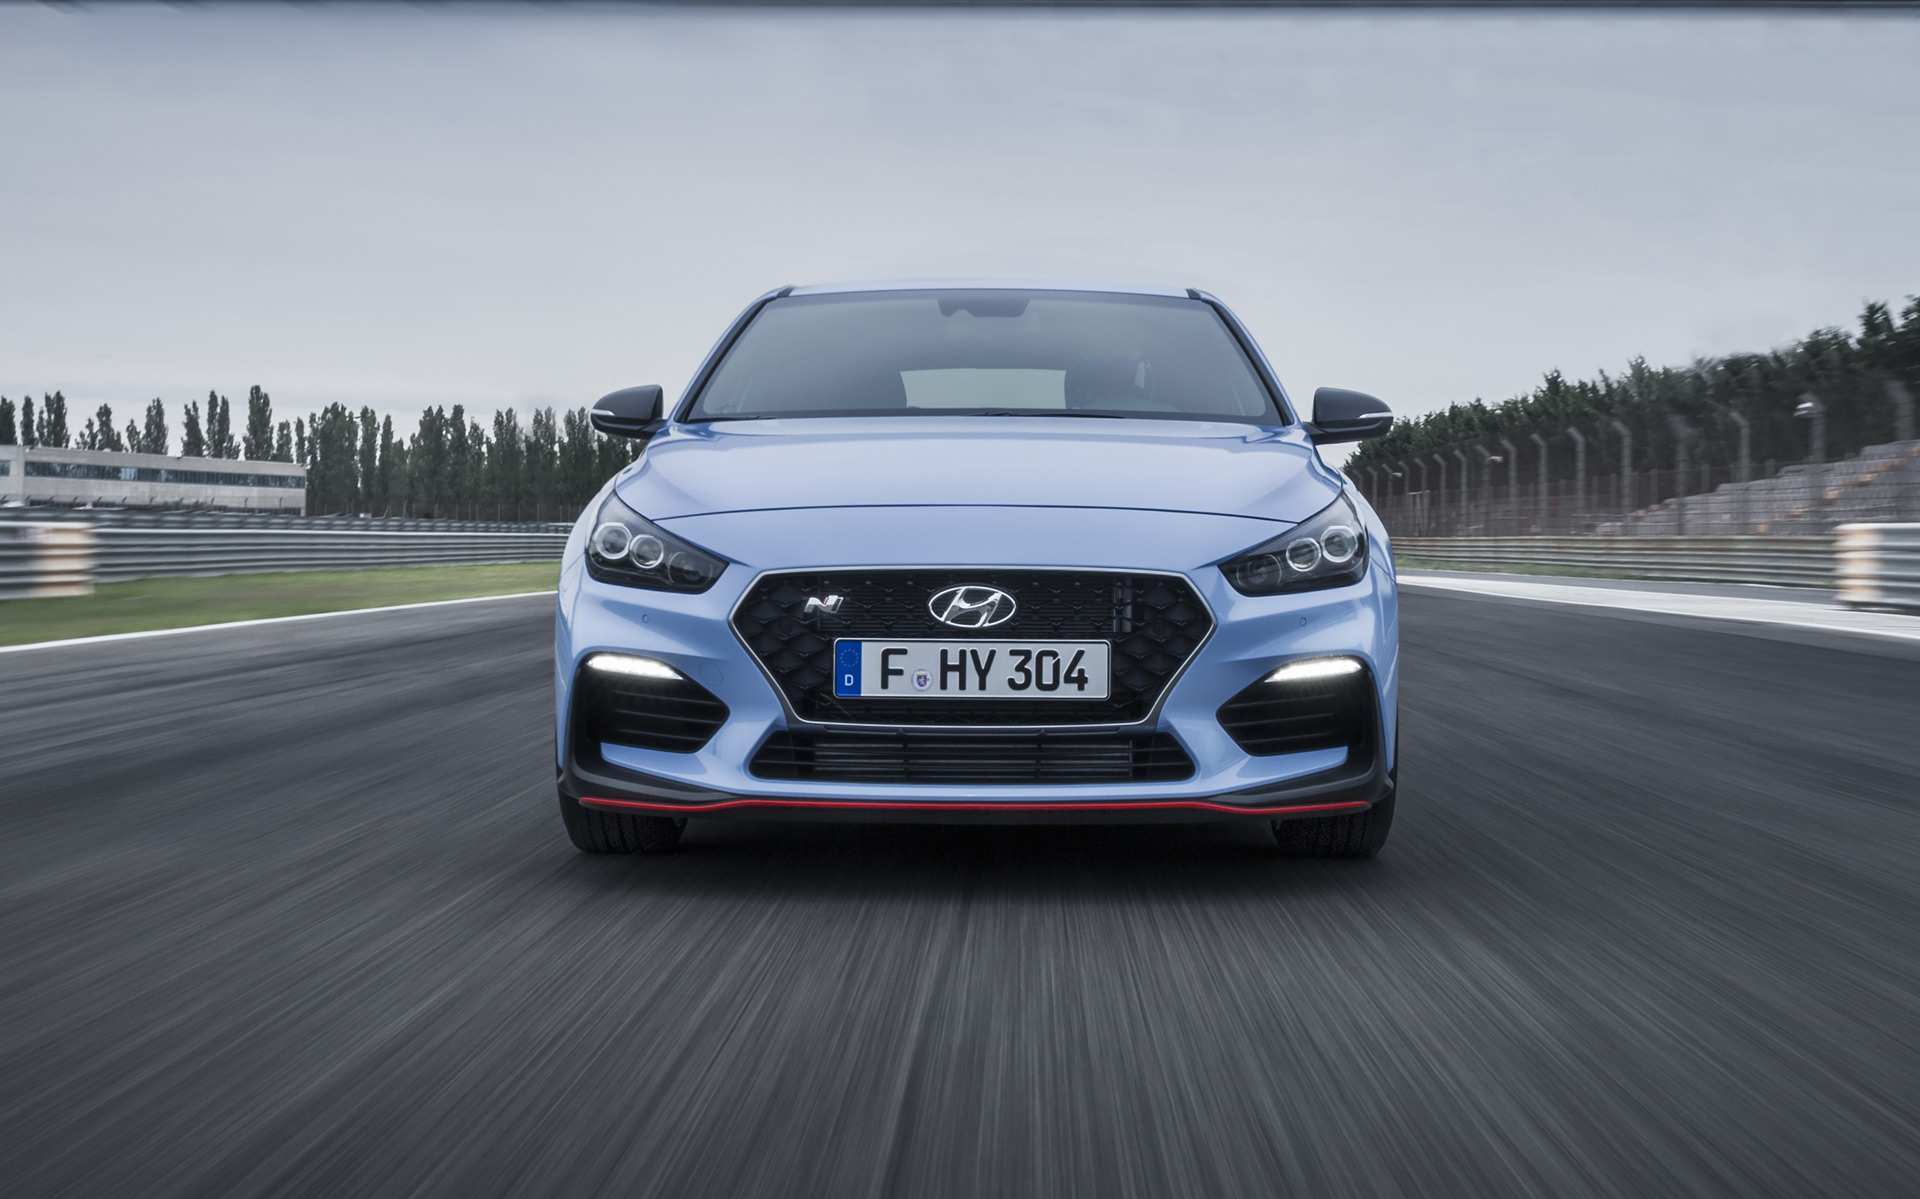 78 Gallery of 2020 Hyundai I30 2018 Price and Review by 2020 Hyundai I30 2018